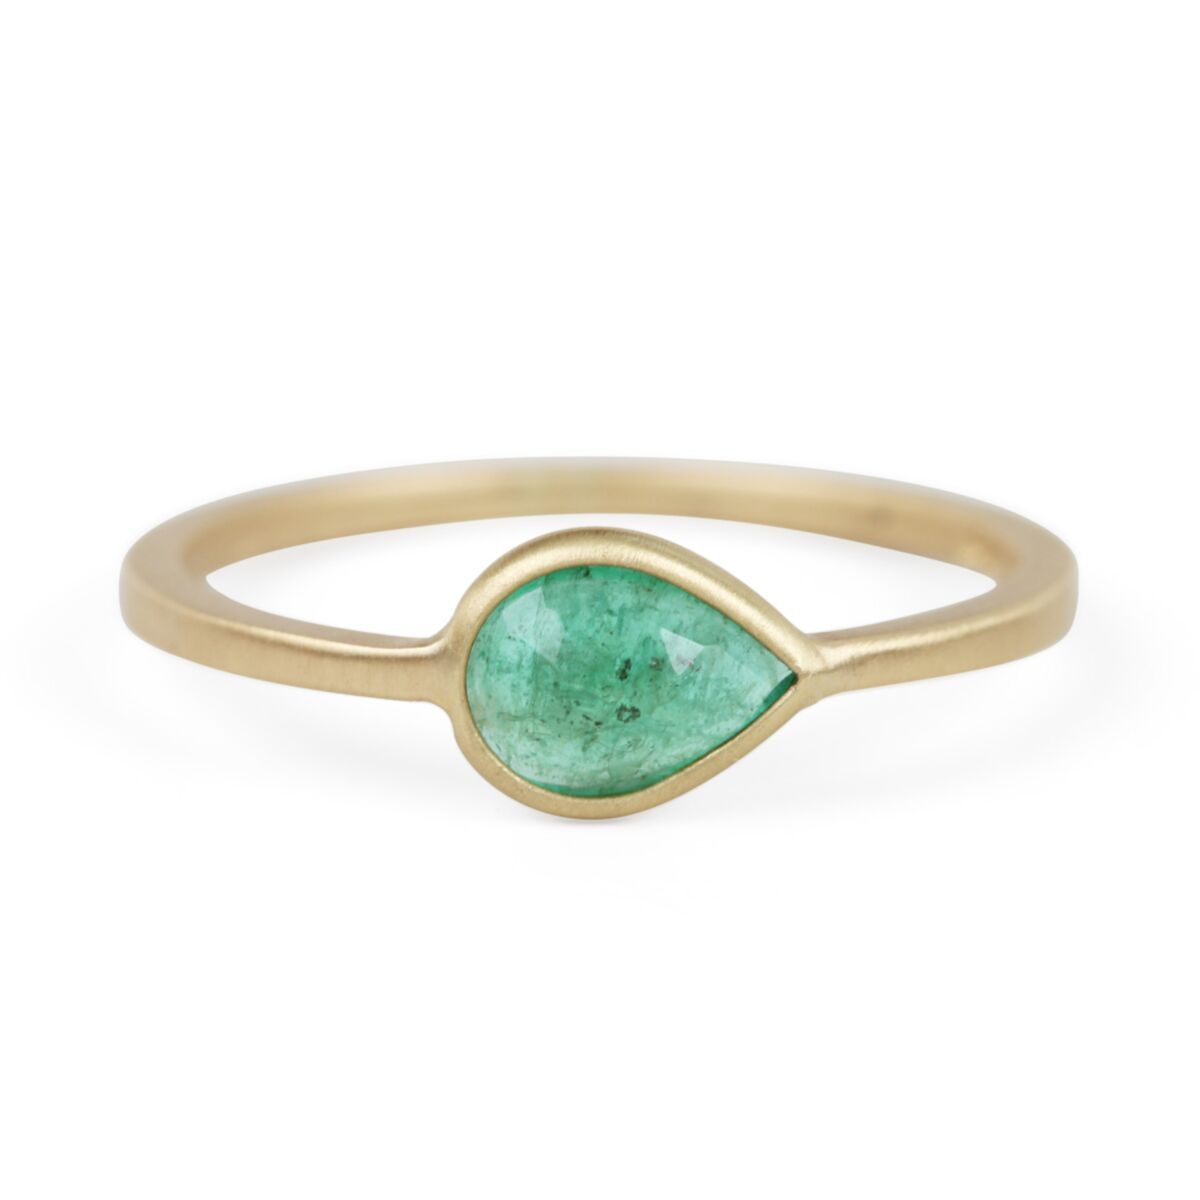 Gillian Conroy Pear Ring with Emerald